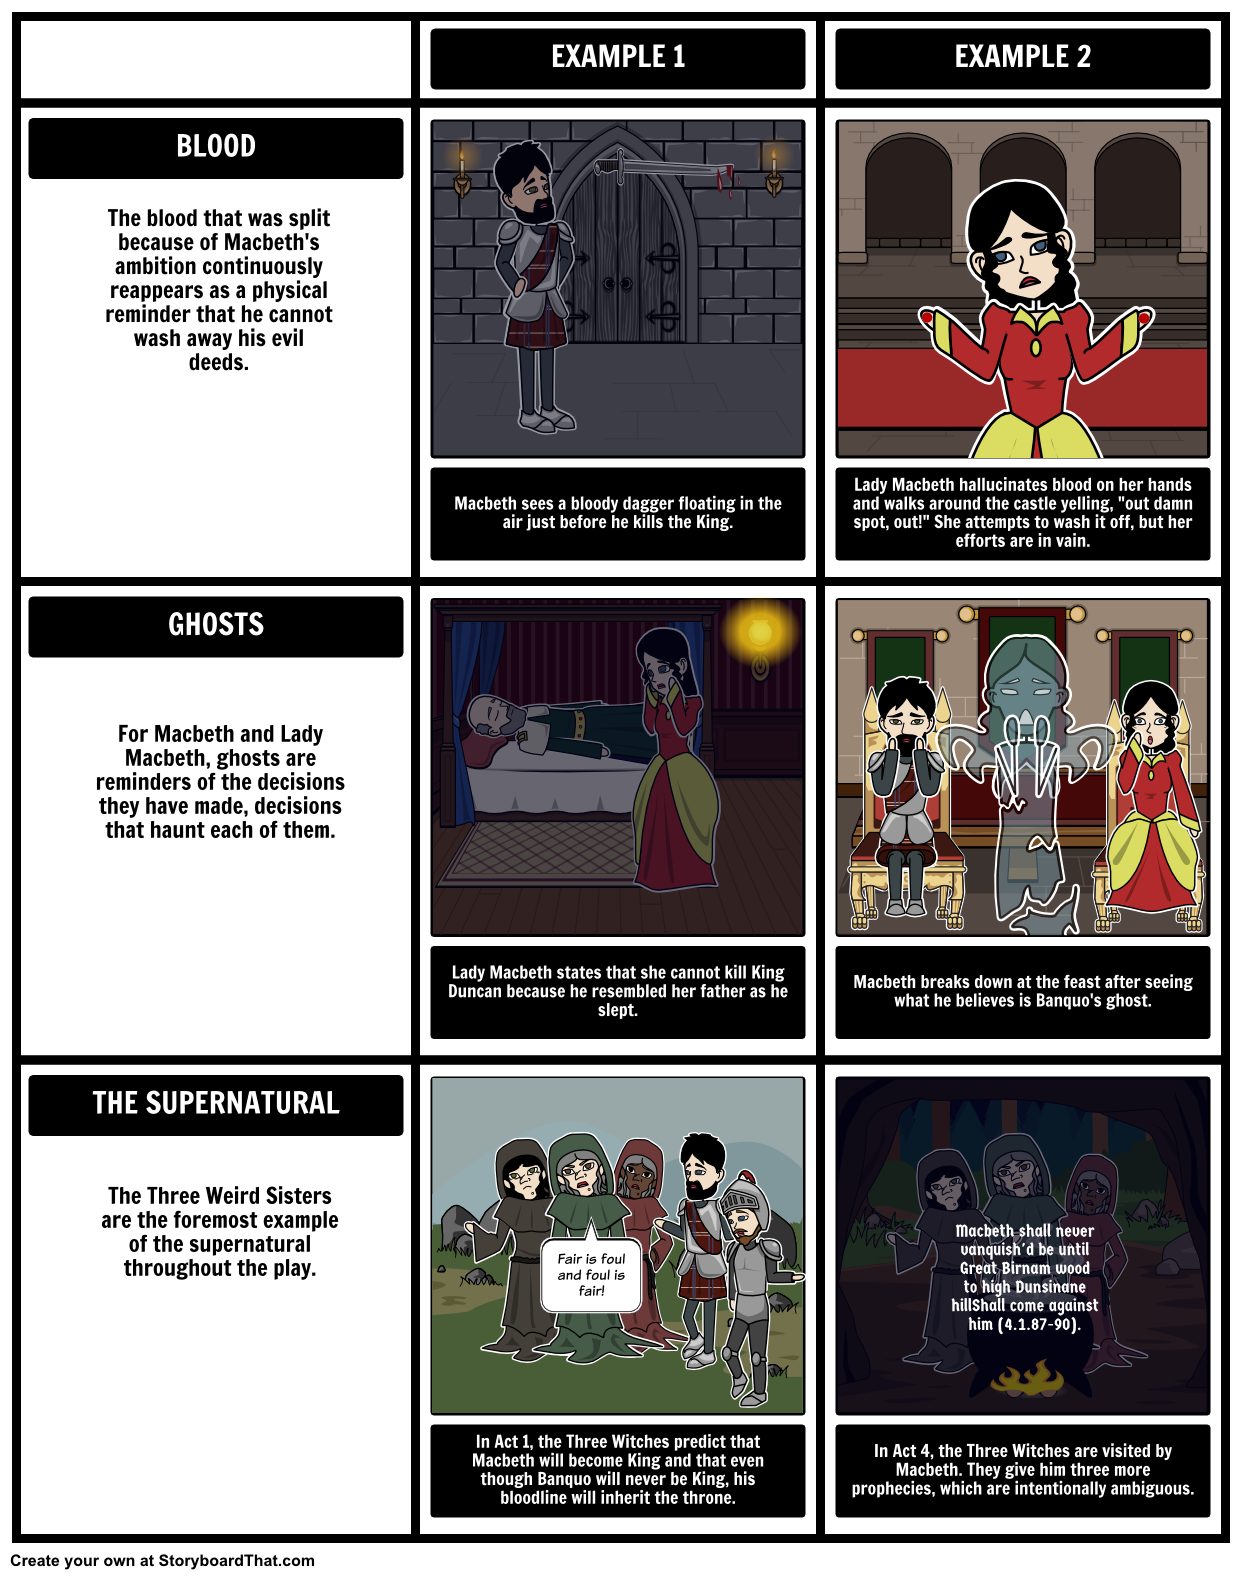 the tragedy of macbeth symbols motifs and themes create this the tragedy of macbeth symbols motifs and themes create this symbols motifs themes storyboard for the tragedy of macbeth using our grid layout